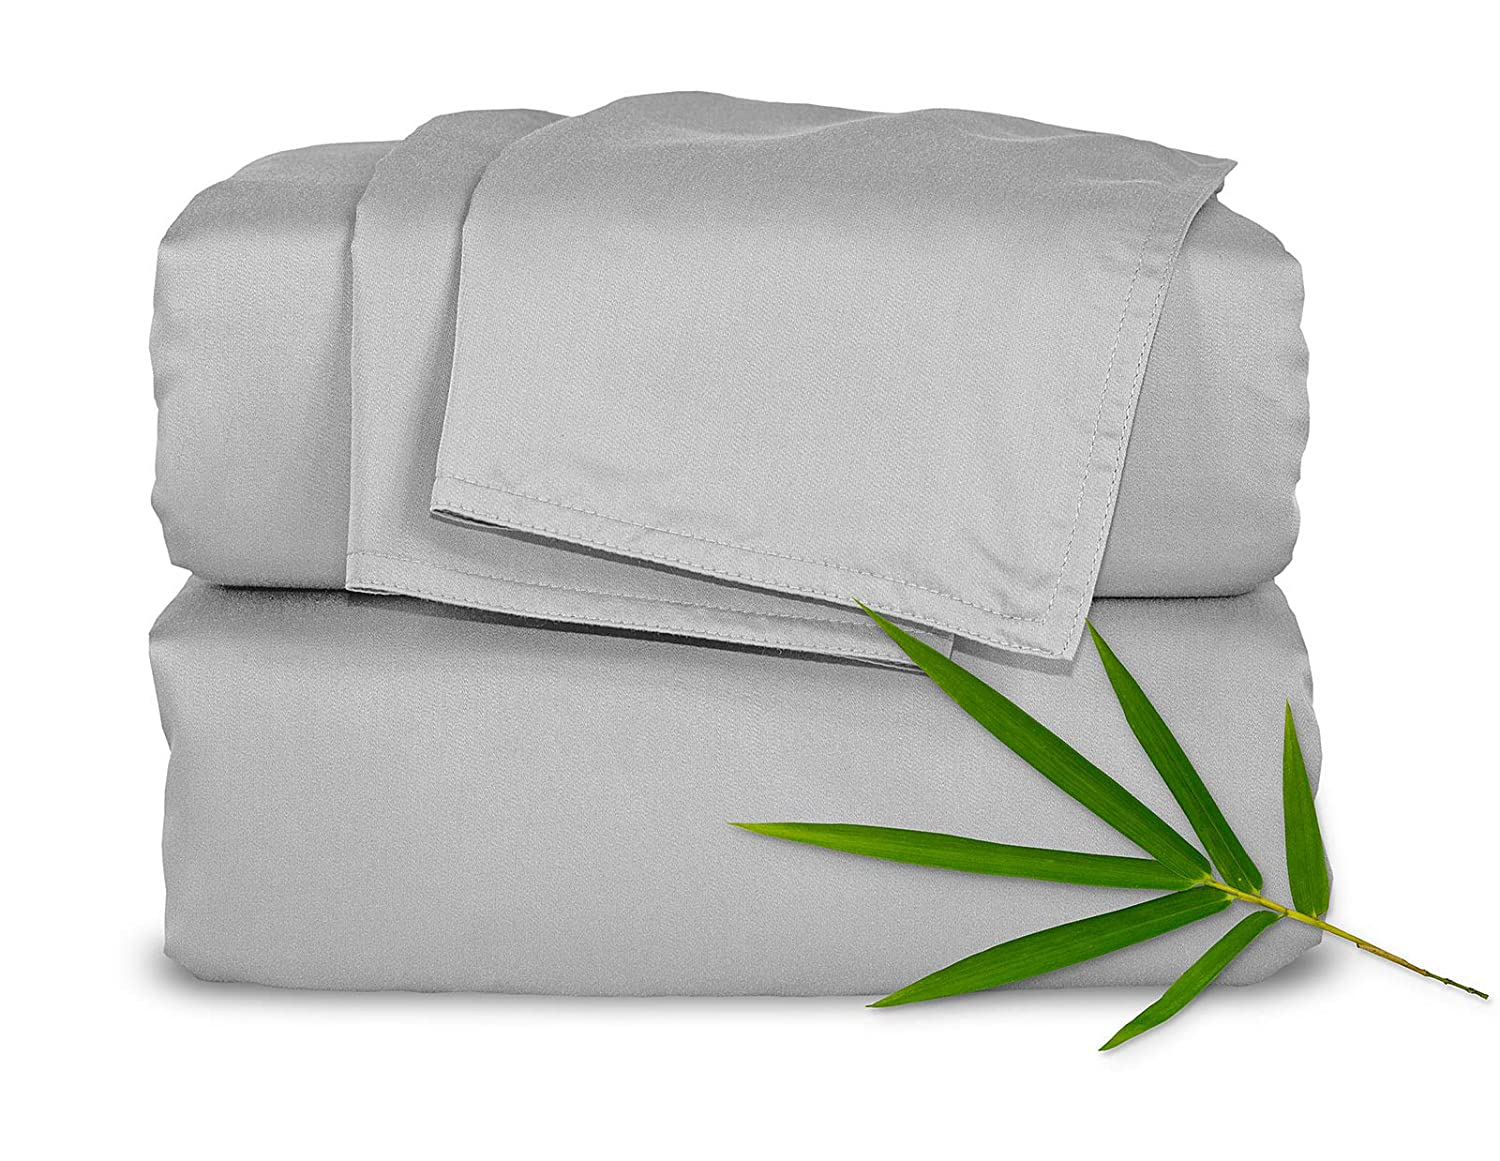 Pure Bamboo Sheets Queen 4pc Bed Sheet Set - 100% Bamboo Luxuriously Soft Bed Sheets